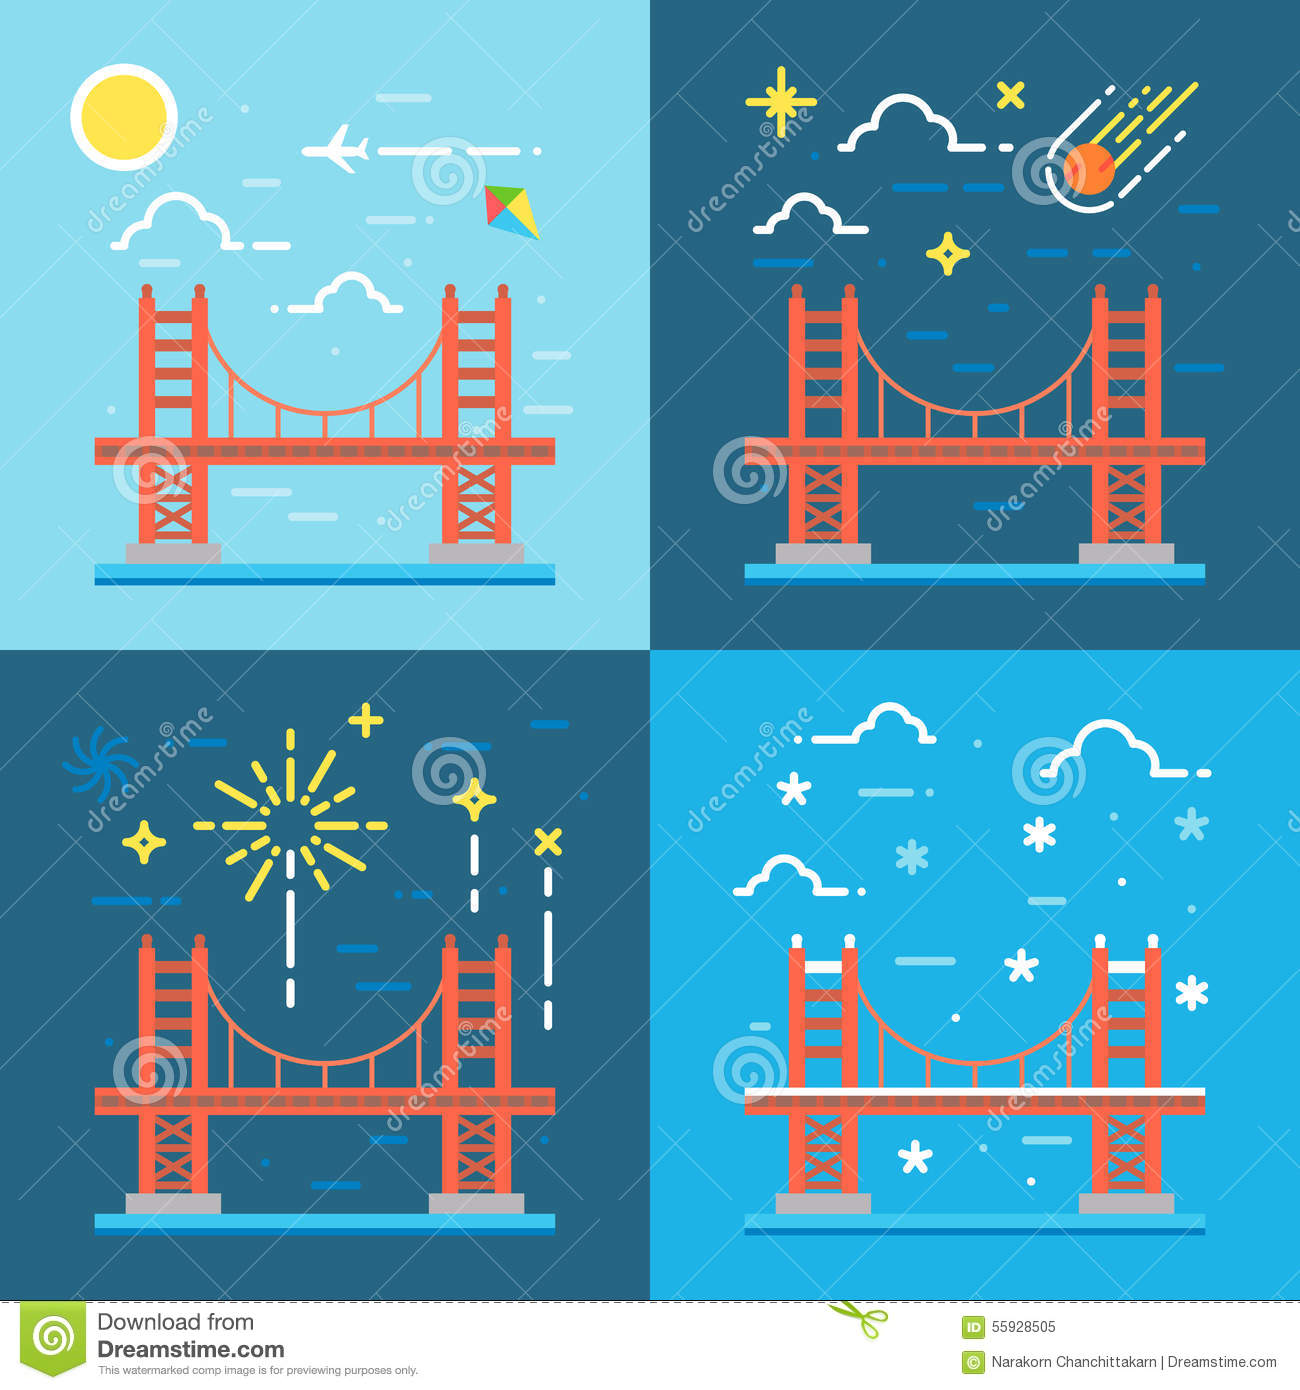 Bridge Golden Gate Vector San Francisco Illustration Red - San francisco map vector free download